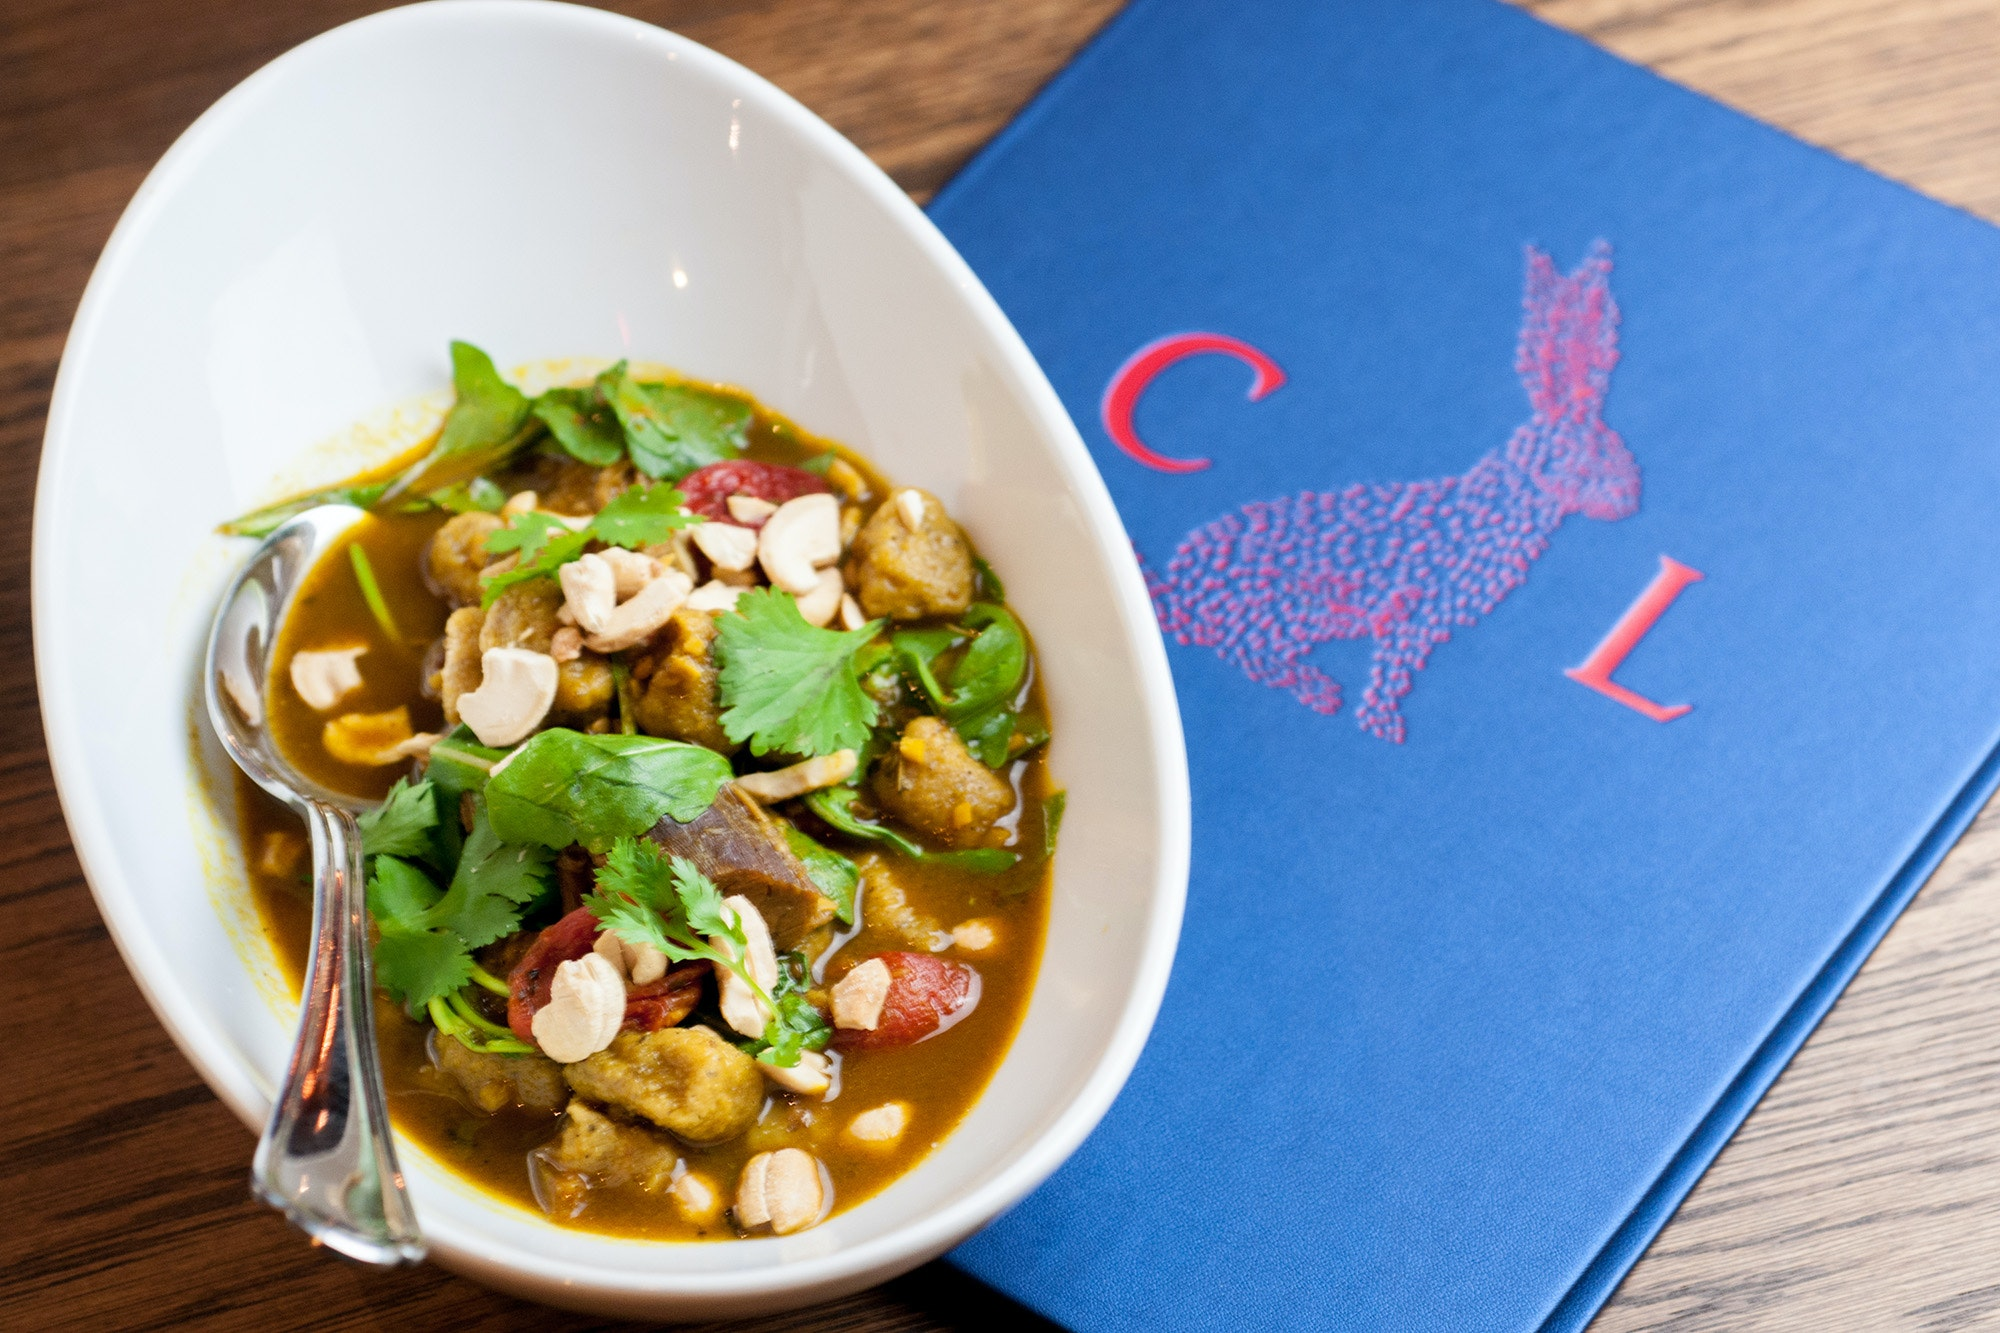 The curried goat and sweet plantain gnocchi at Compère Lapin